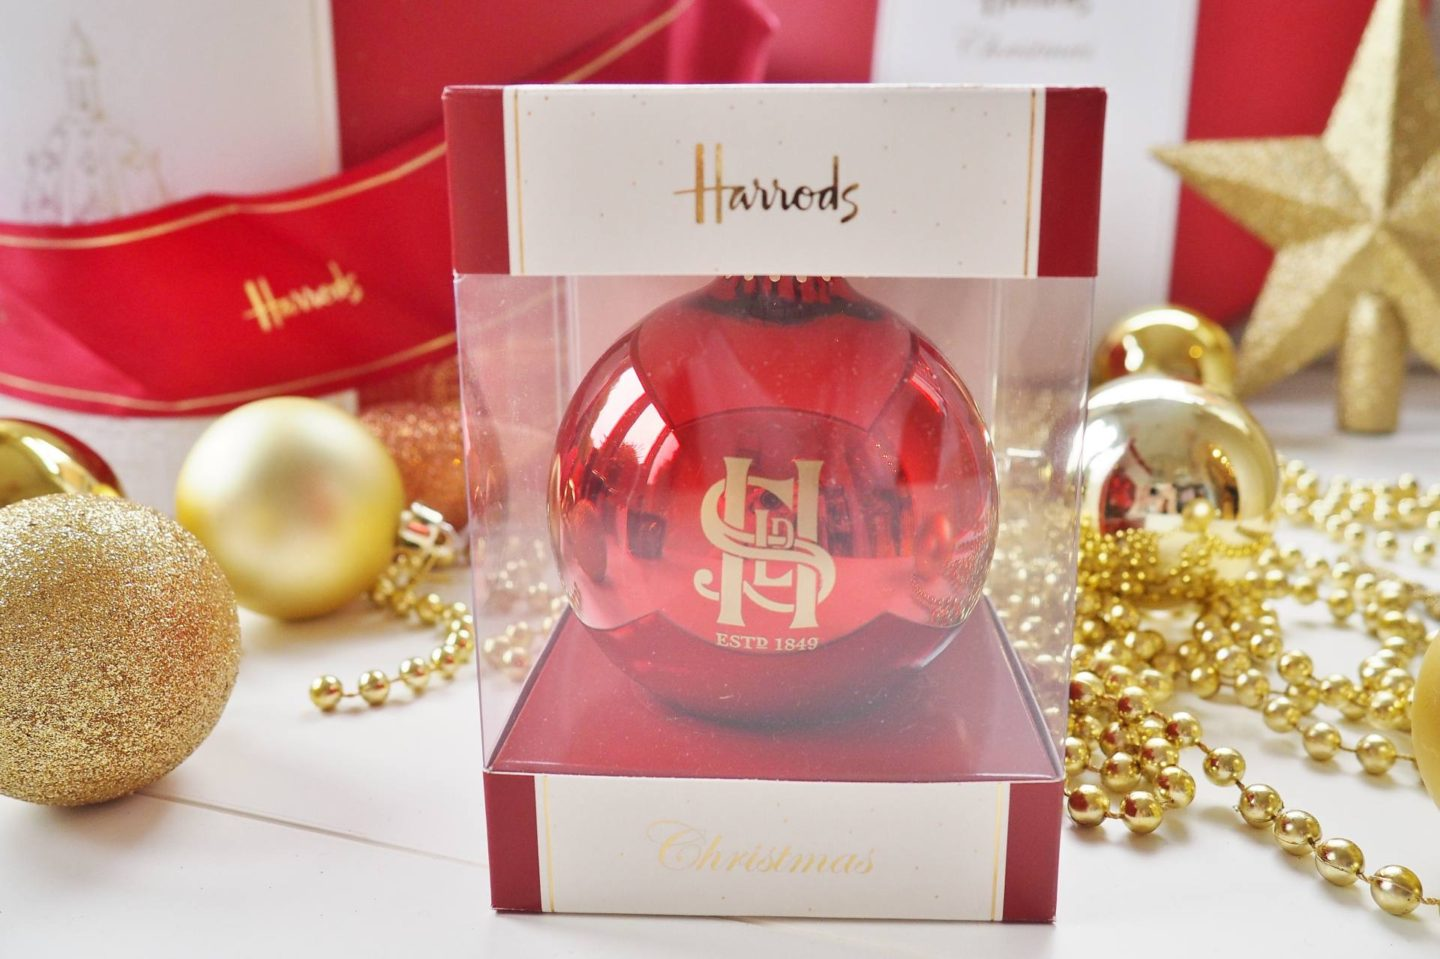 Harrods Christmas Hamper Box - A Christmas Carol Collaboration ...